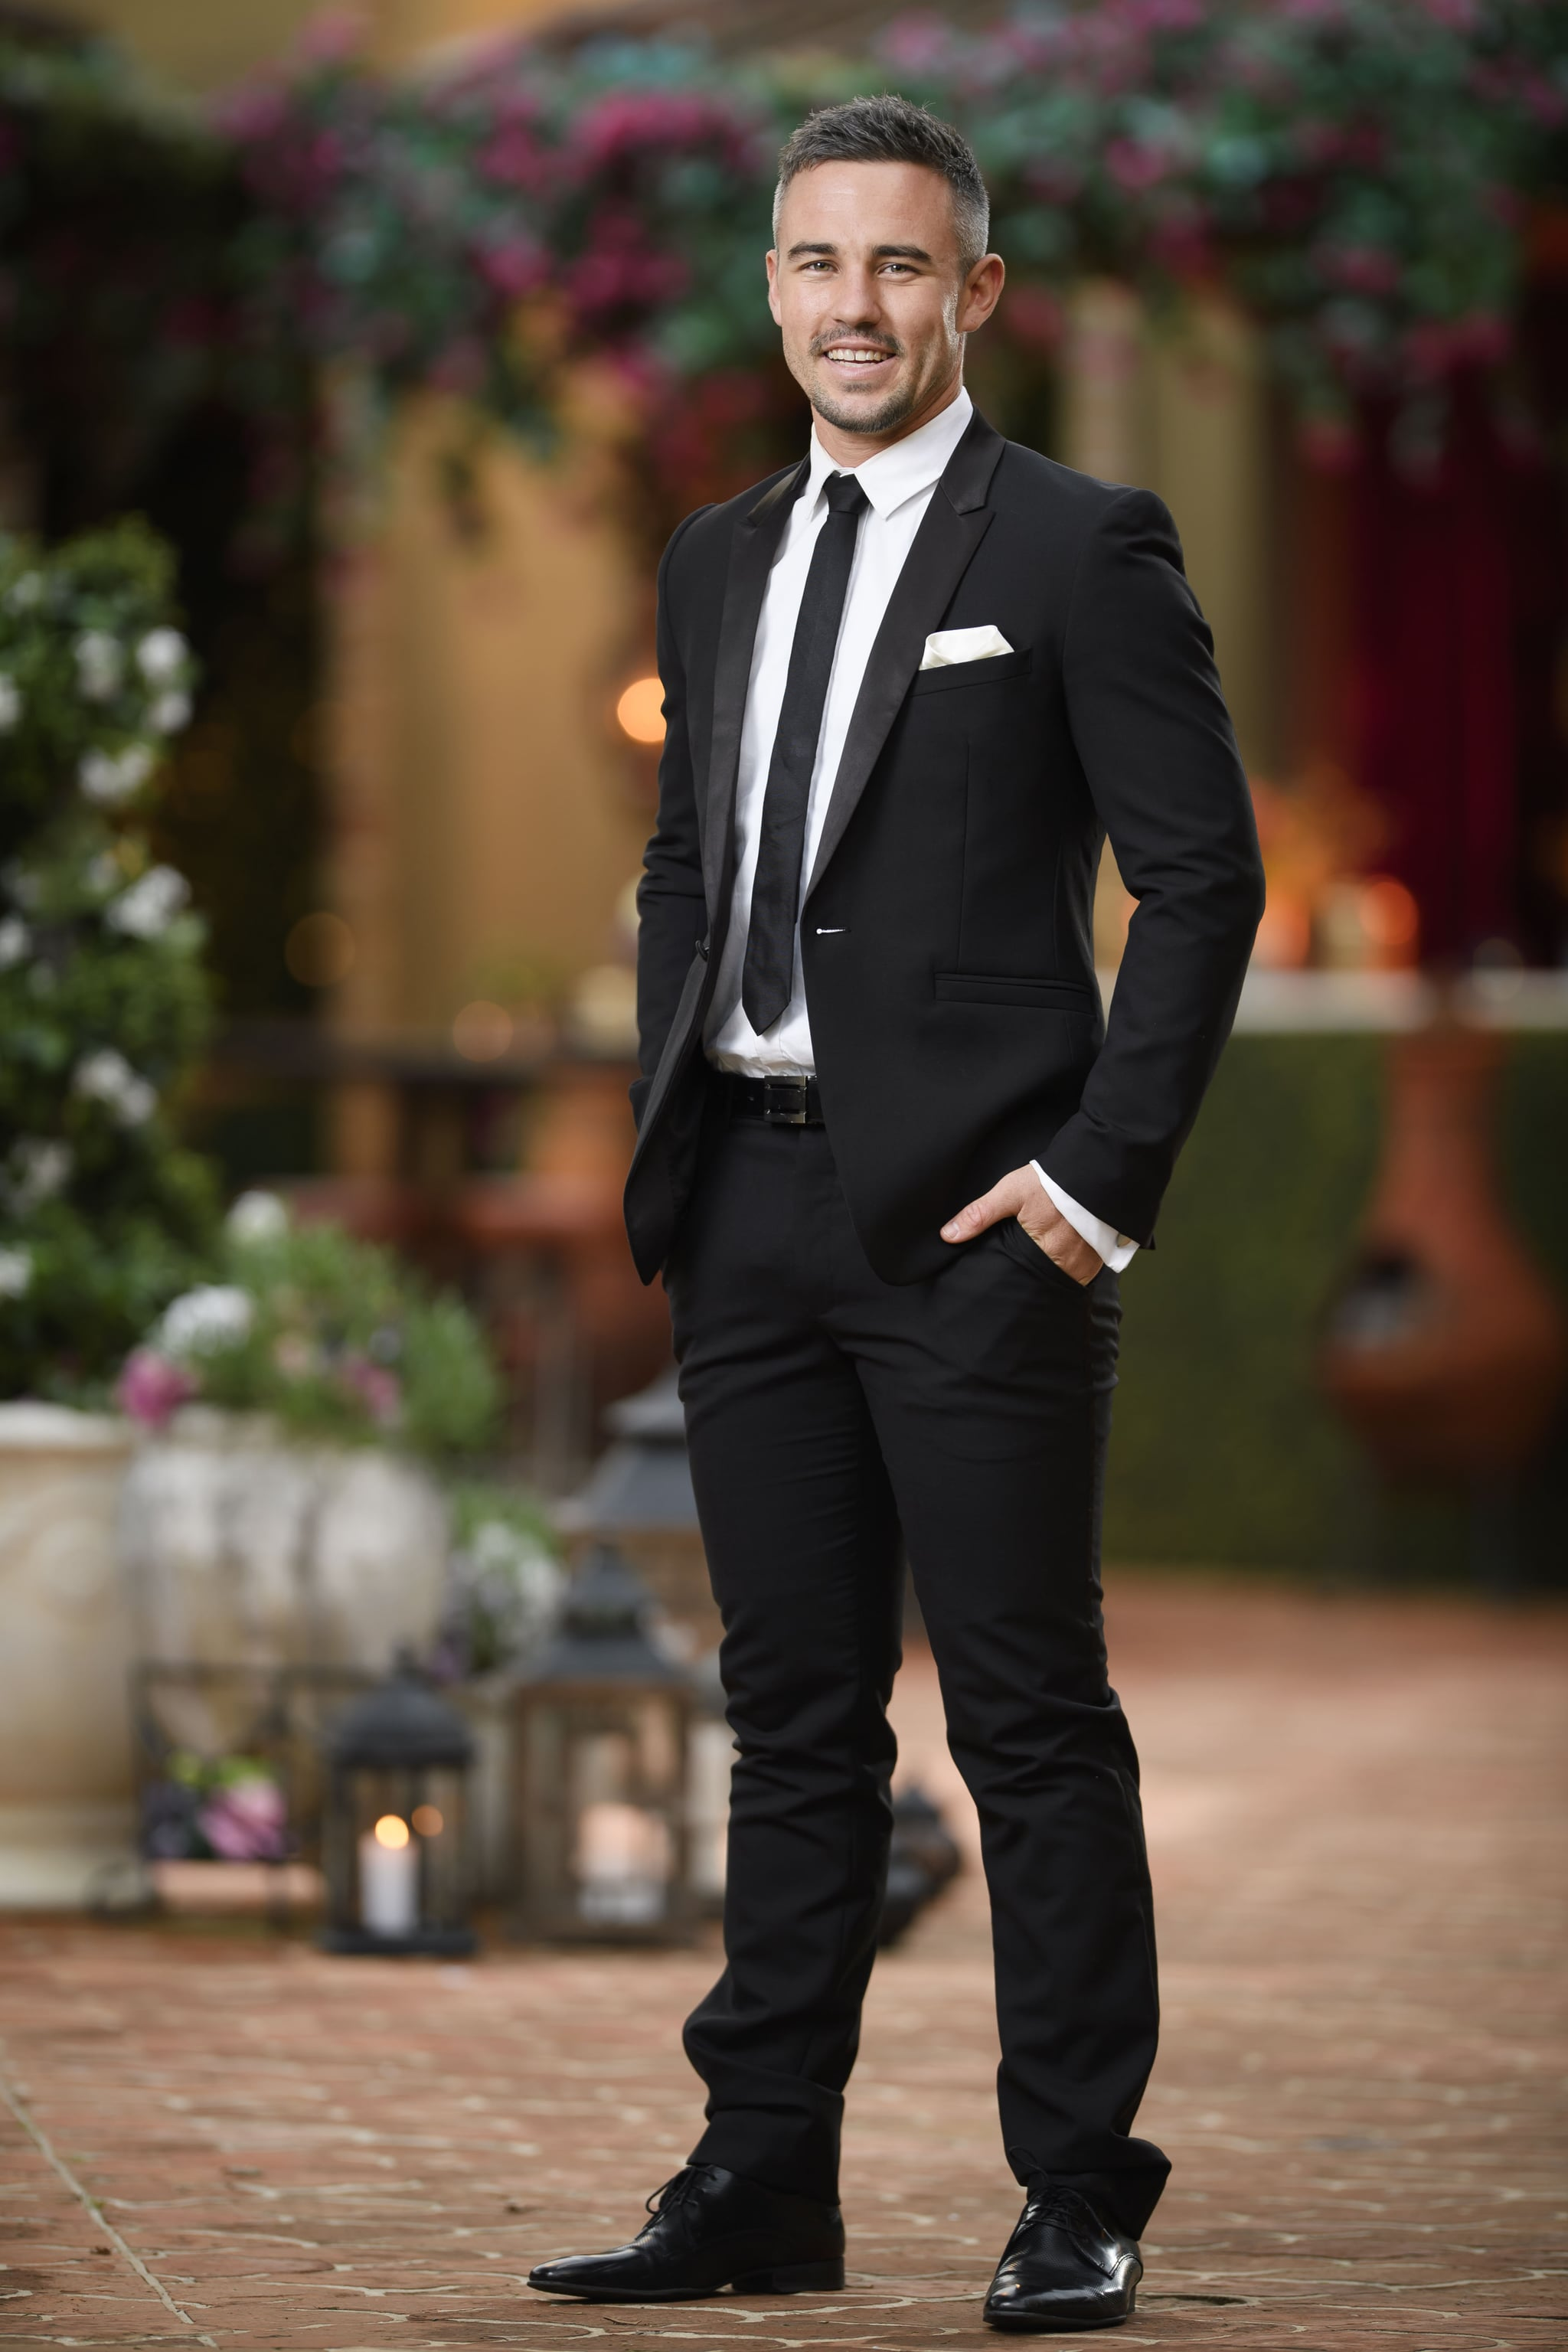 We Should Look Away From The Shocking 'Bachelor' Finale ...